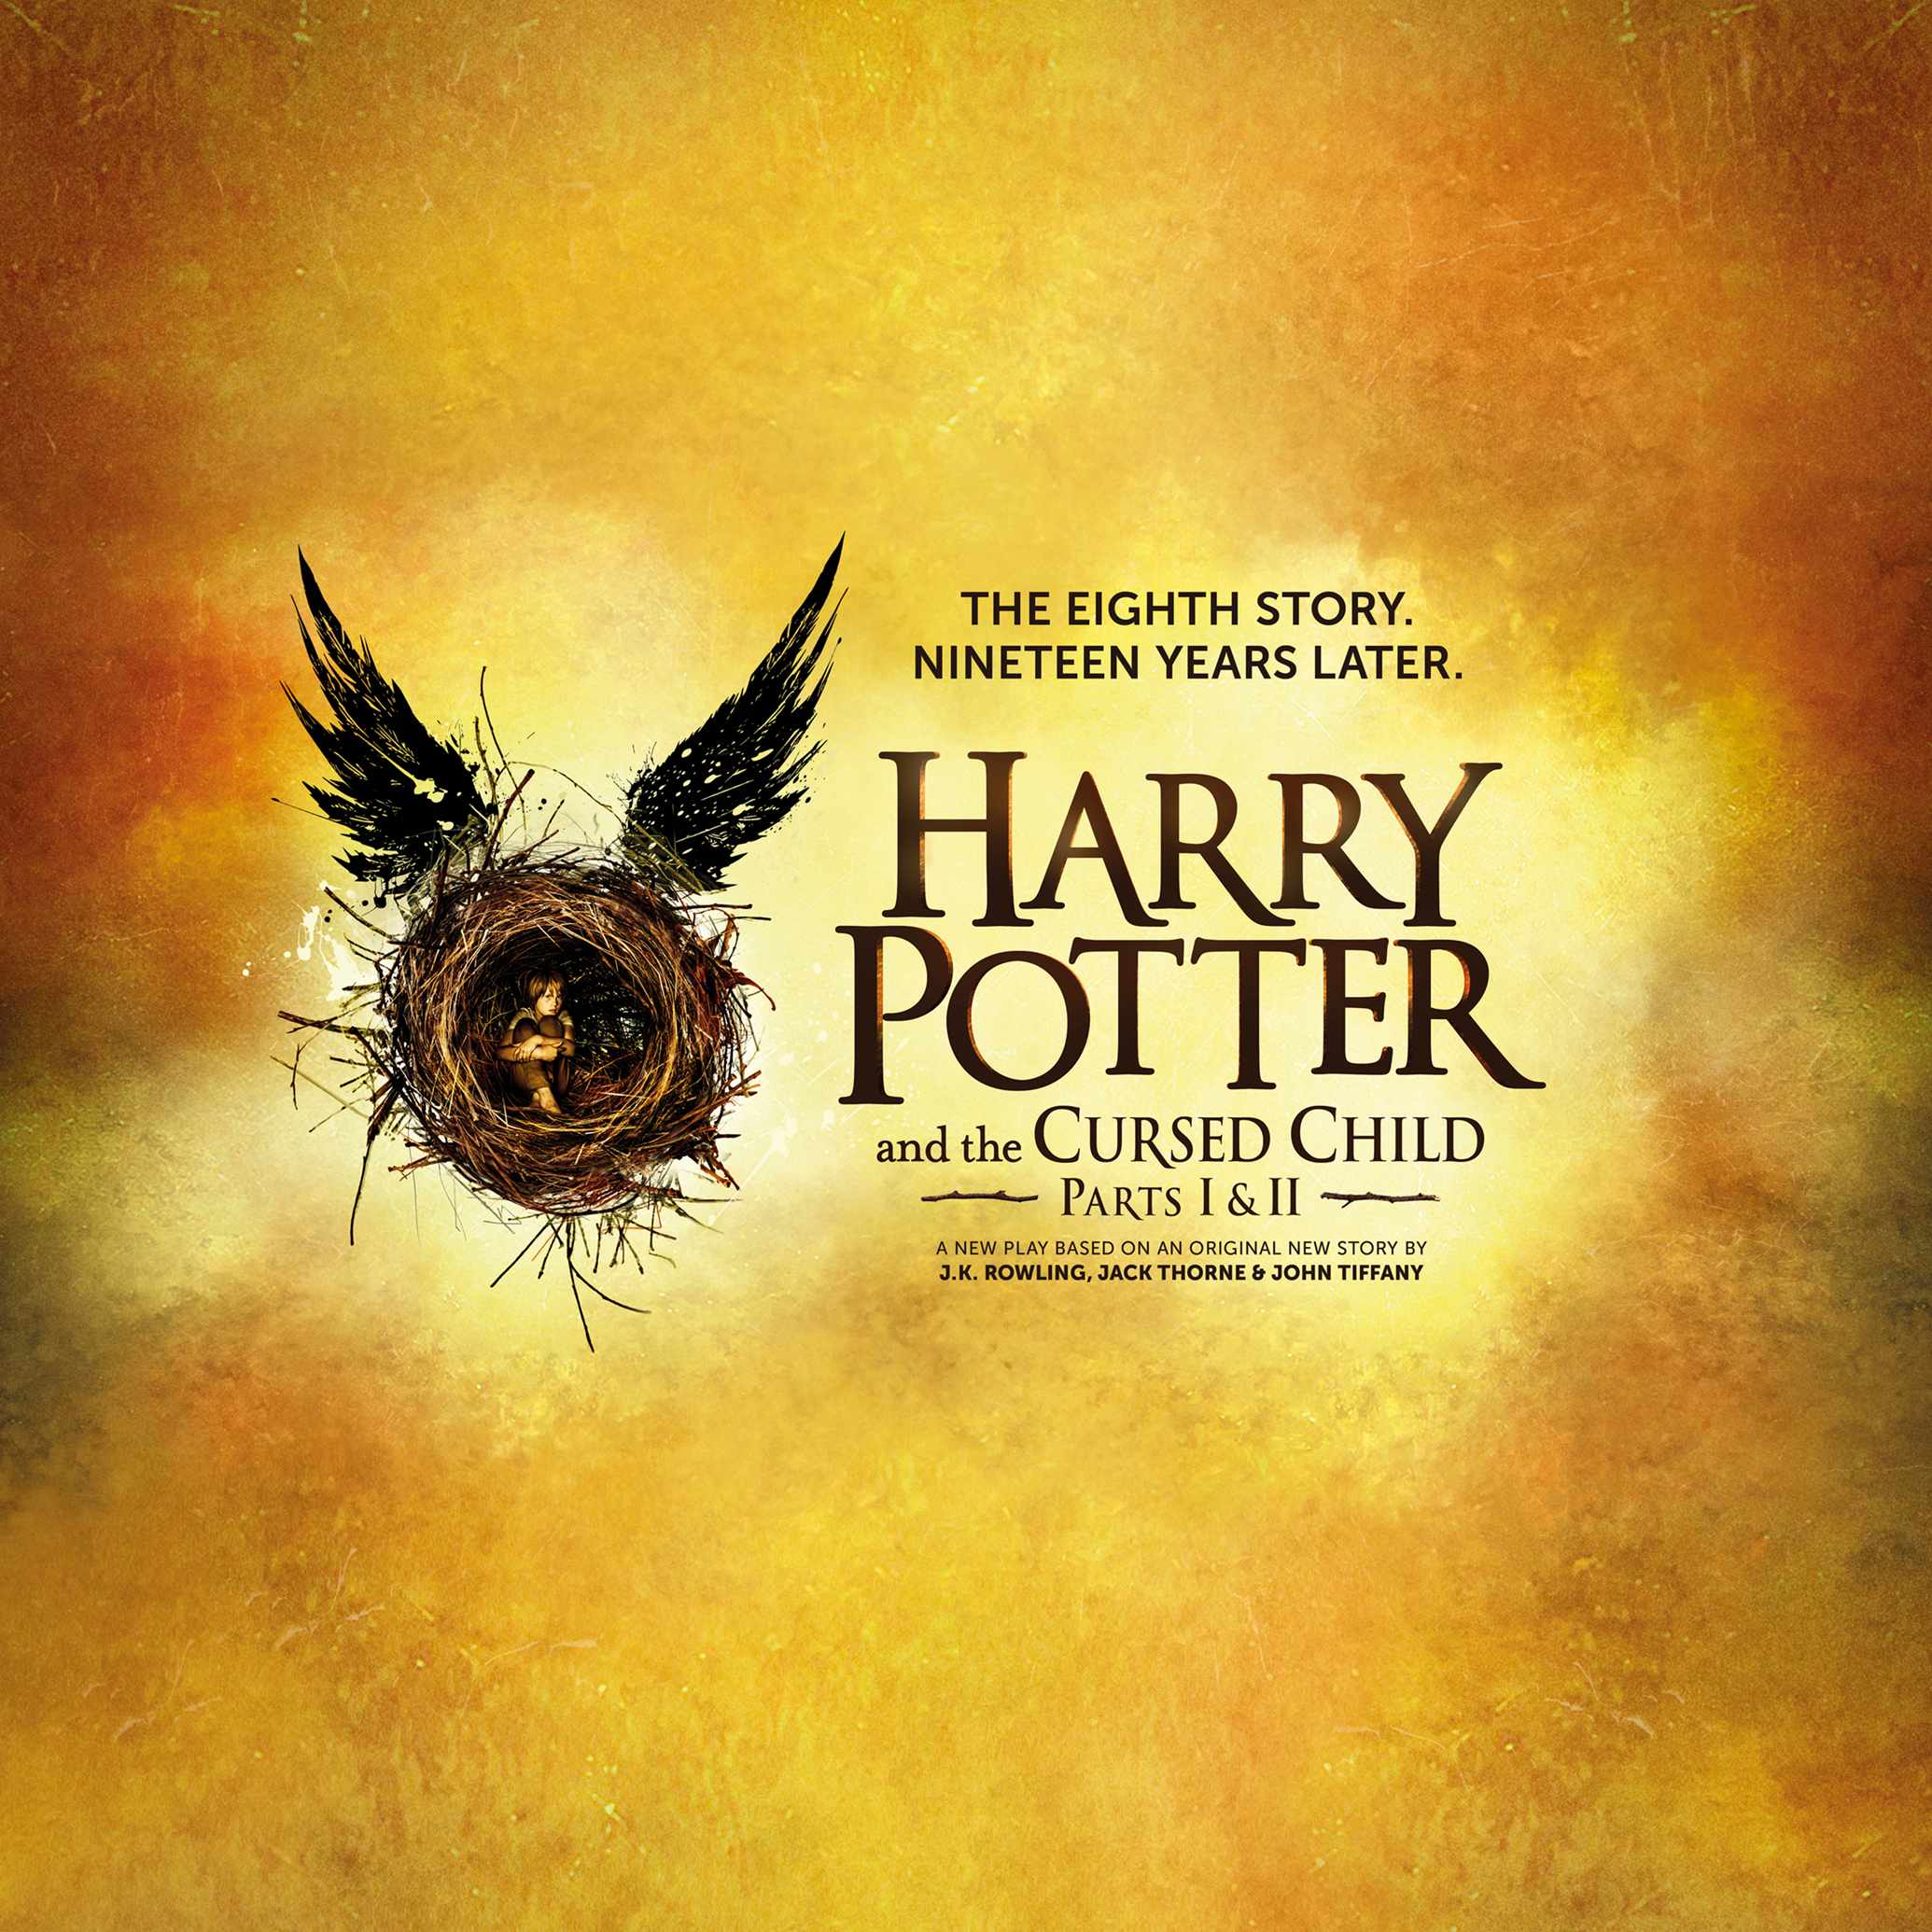 Harry Potter and the Cursed Child Poster FULL square